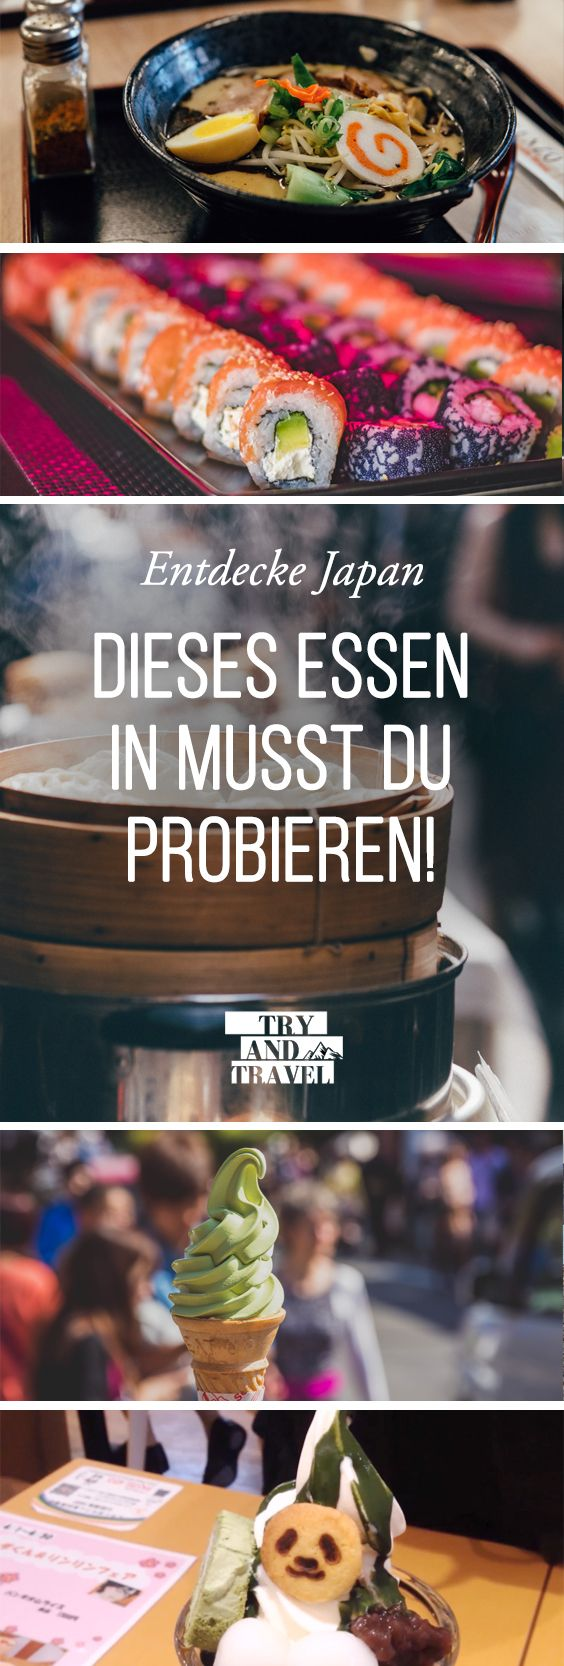 Japan Food Diary - Das solltest du in Japan essen!